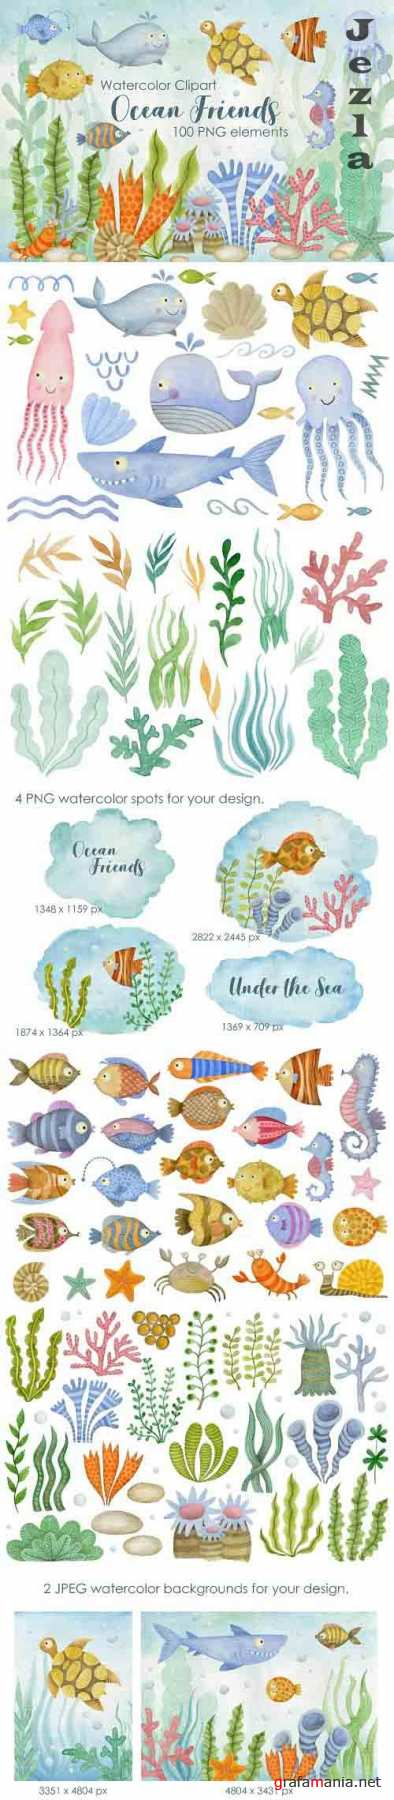 Watercolor Sea Animals Friends collection - 1358662